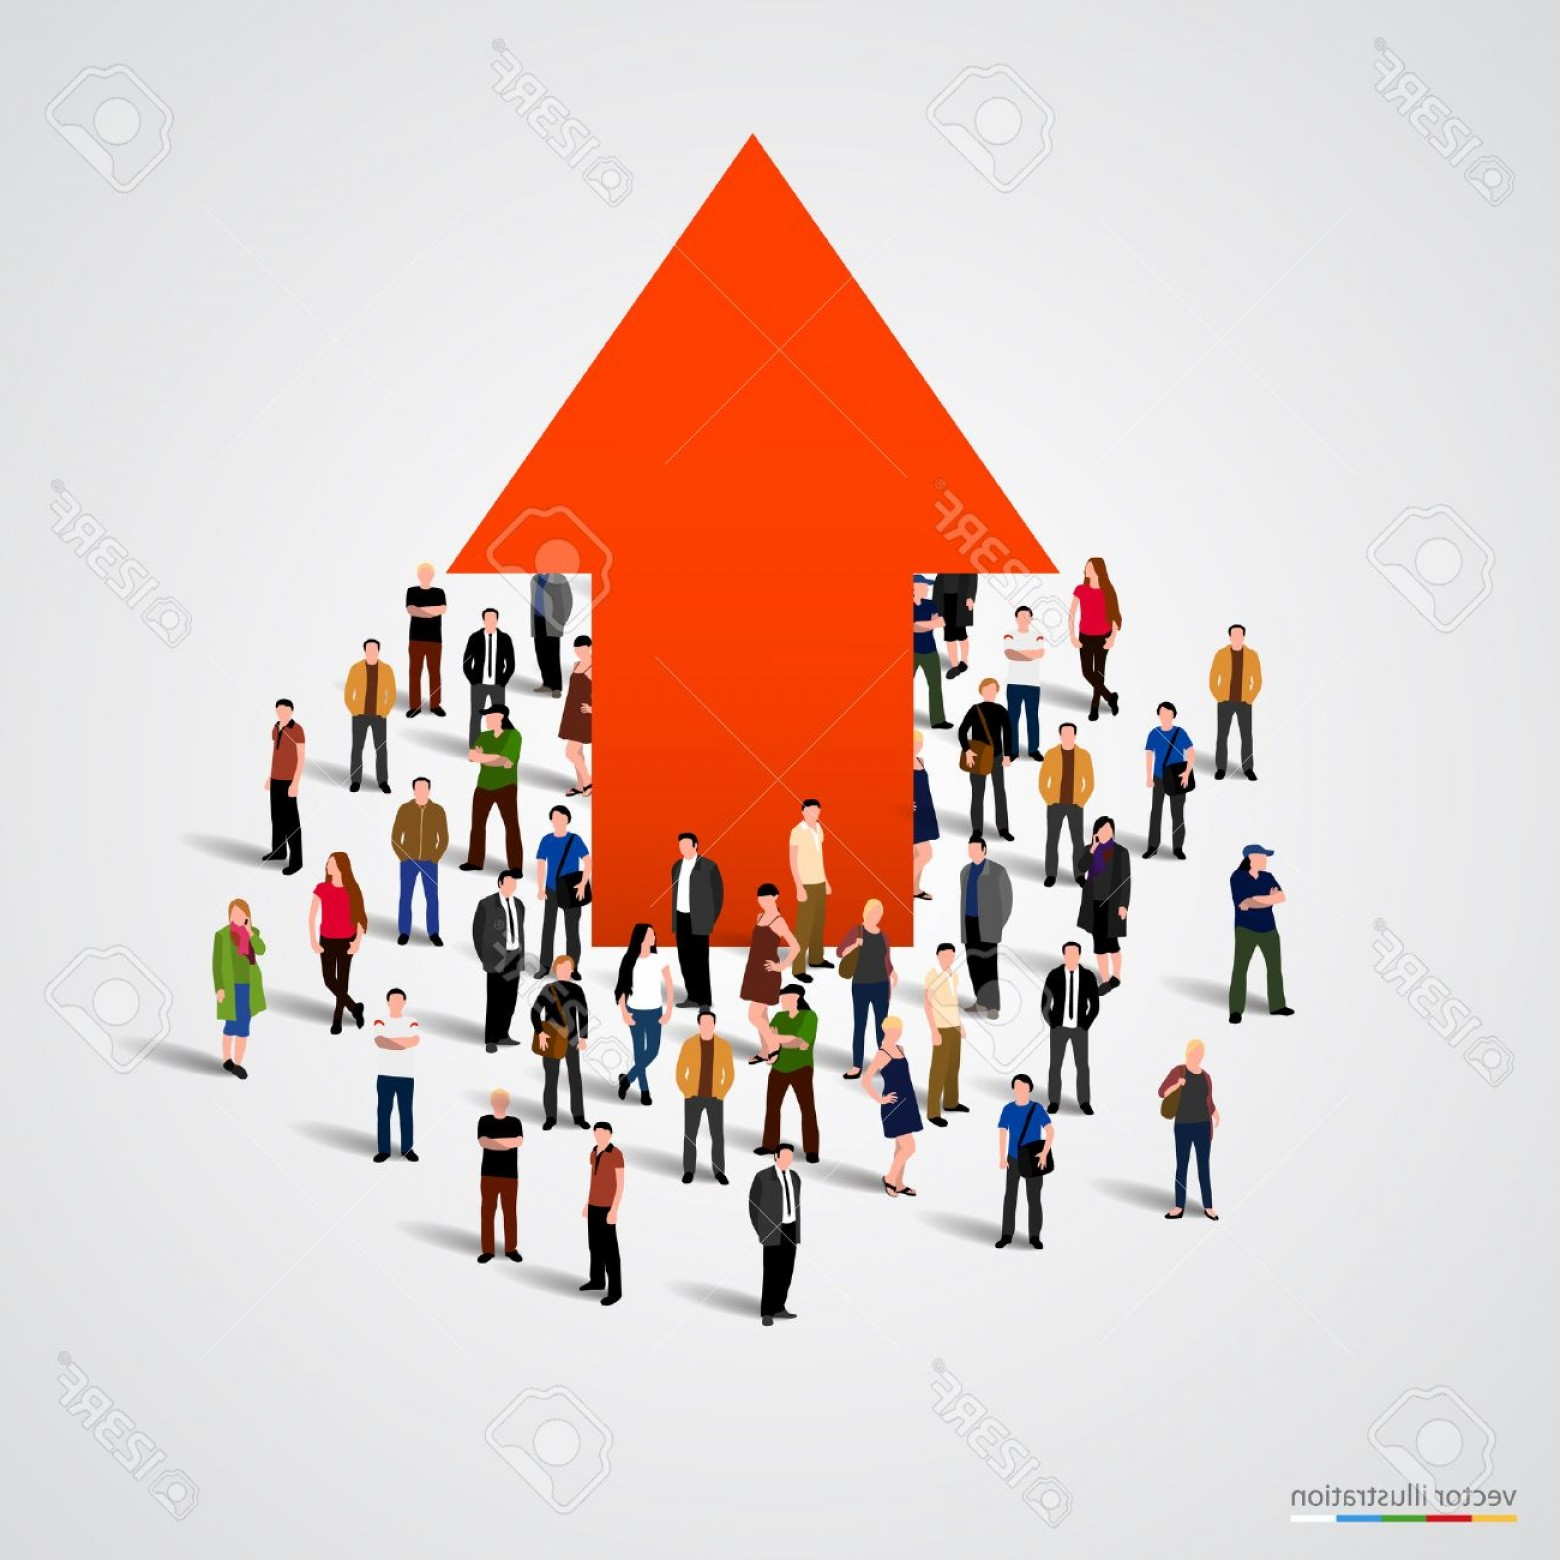 Growth Vector People: Photostock Vector Growth Chart And Progress In People Crowd Vector Illustration